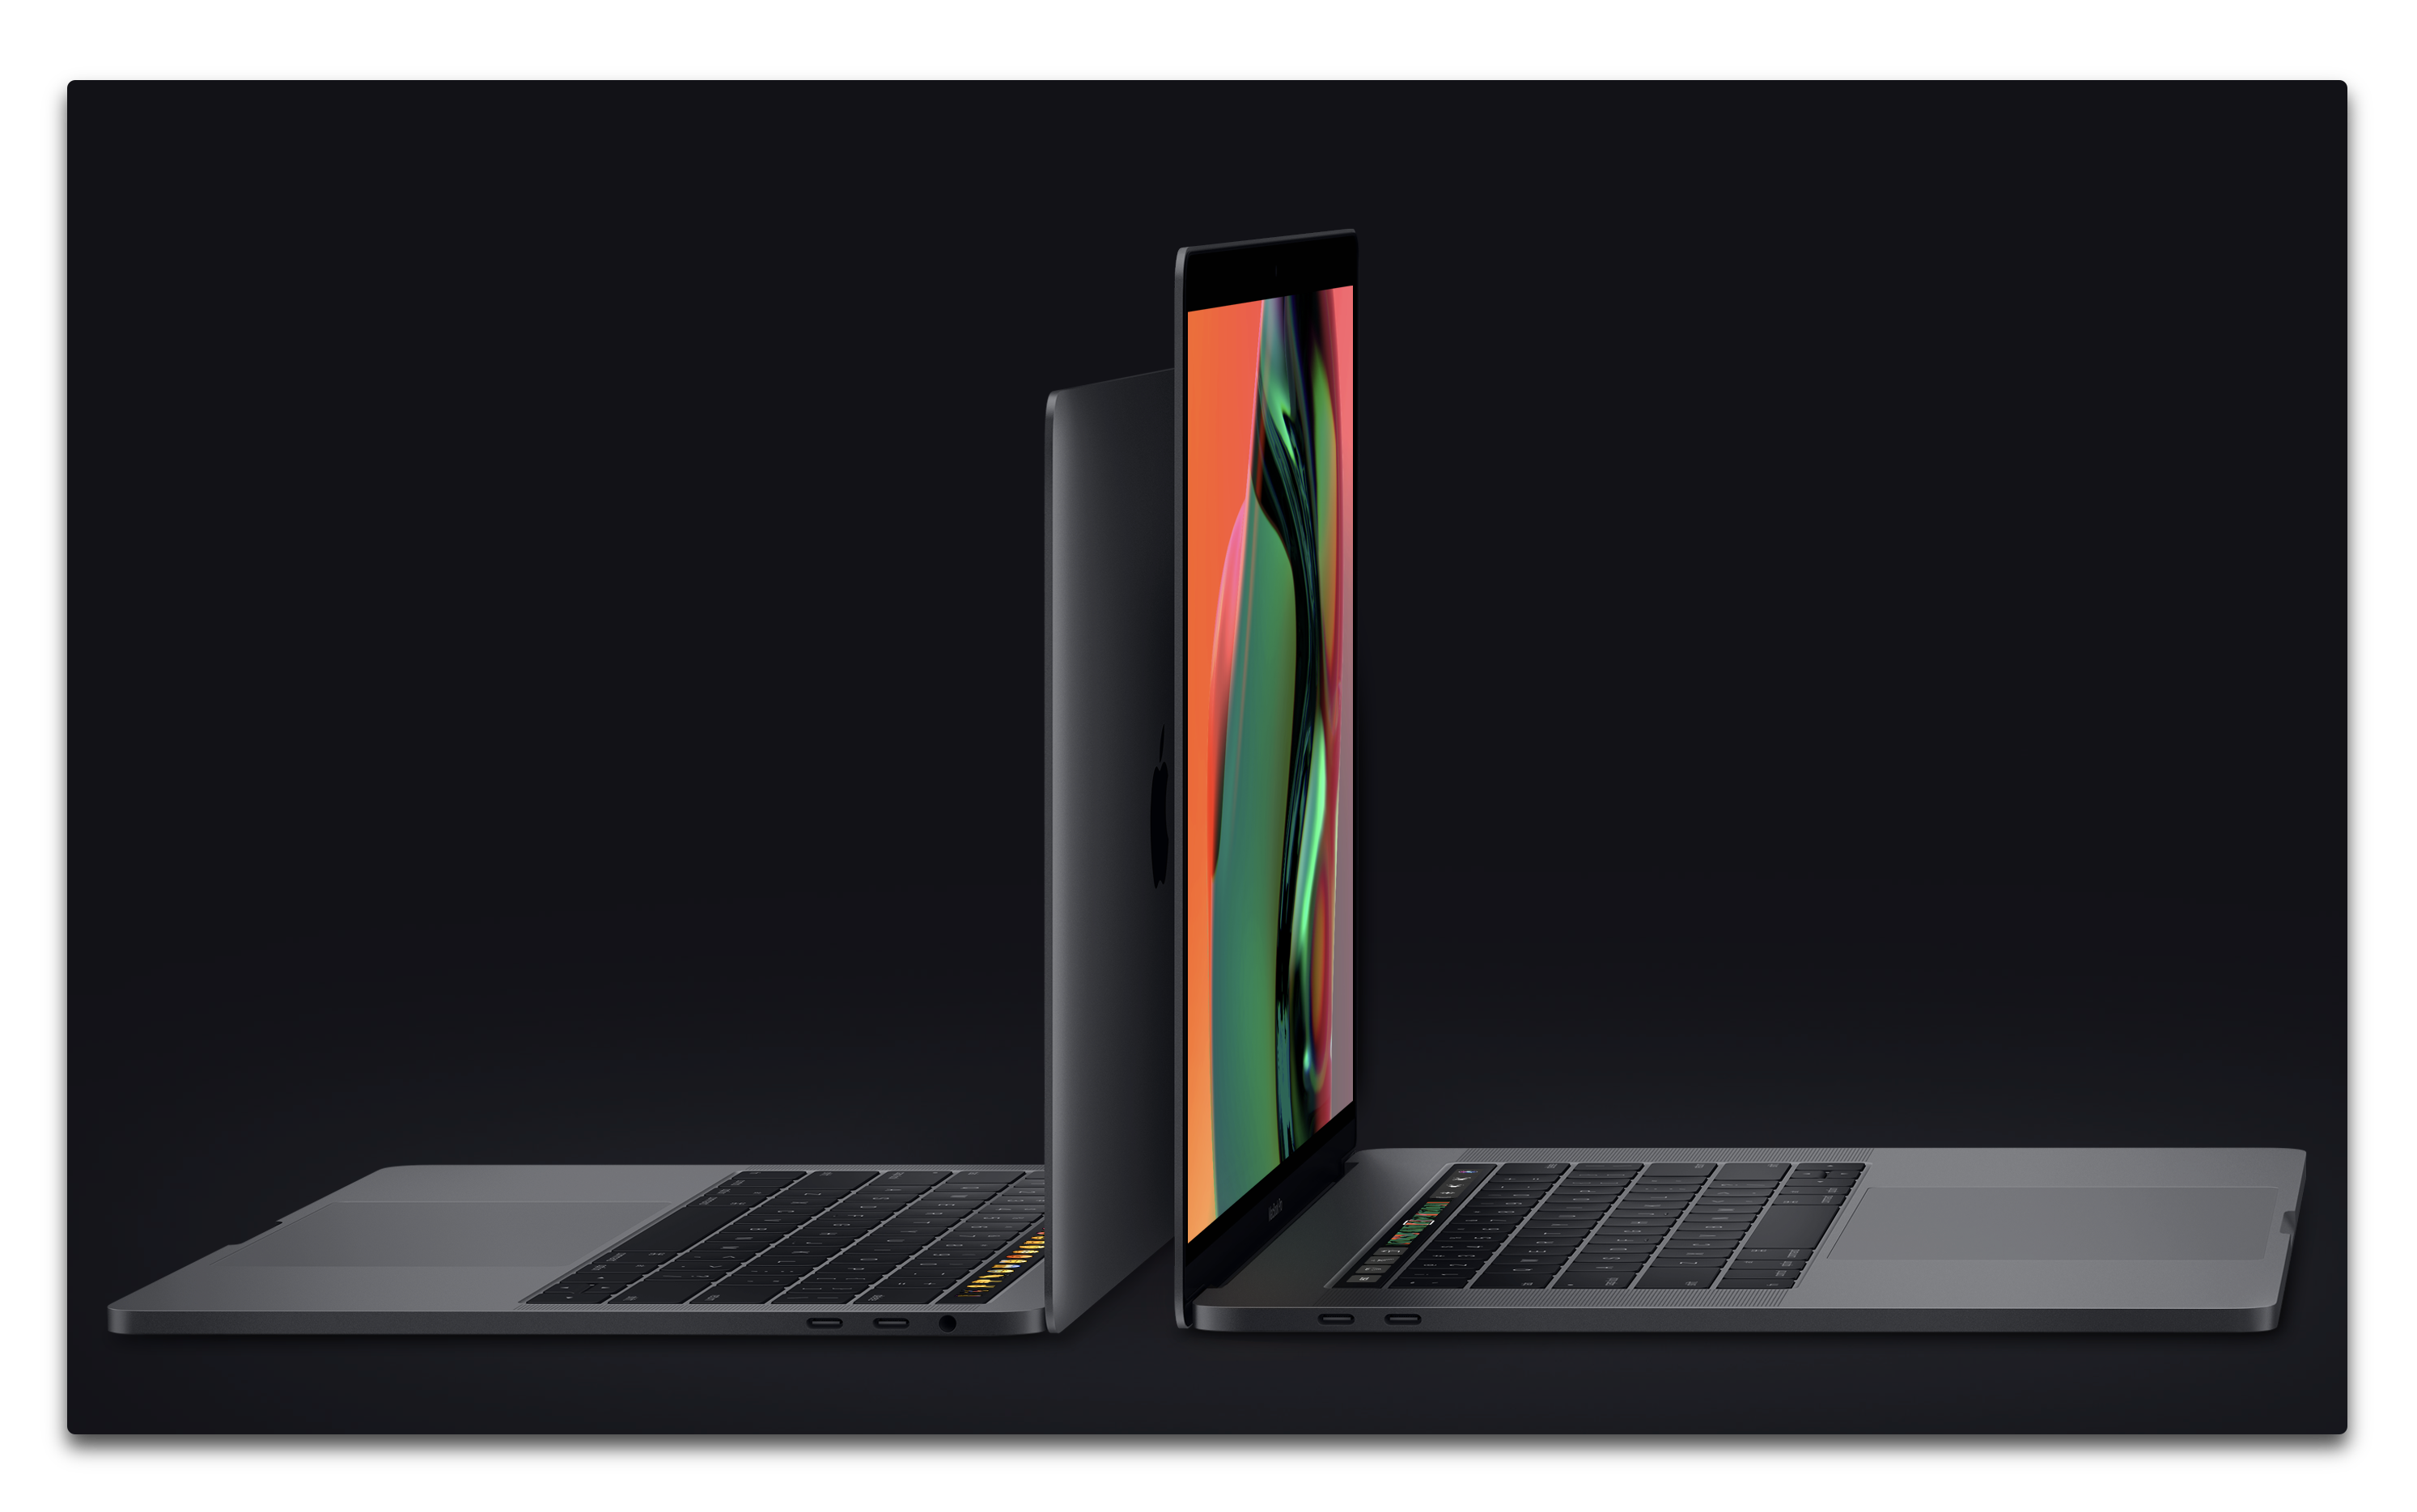 Apple、MacBook Pro 2018 with Touch Barに対応した「macOS High Sierra 10.13.6 追加アップデート」をリリース